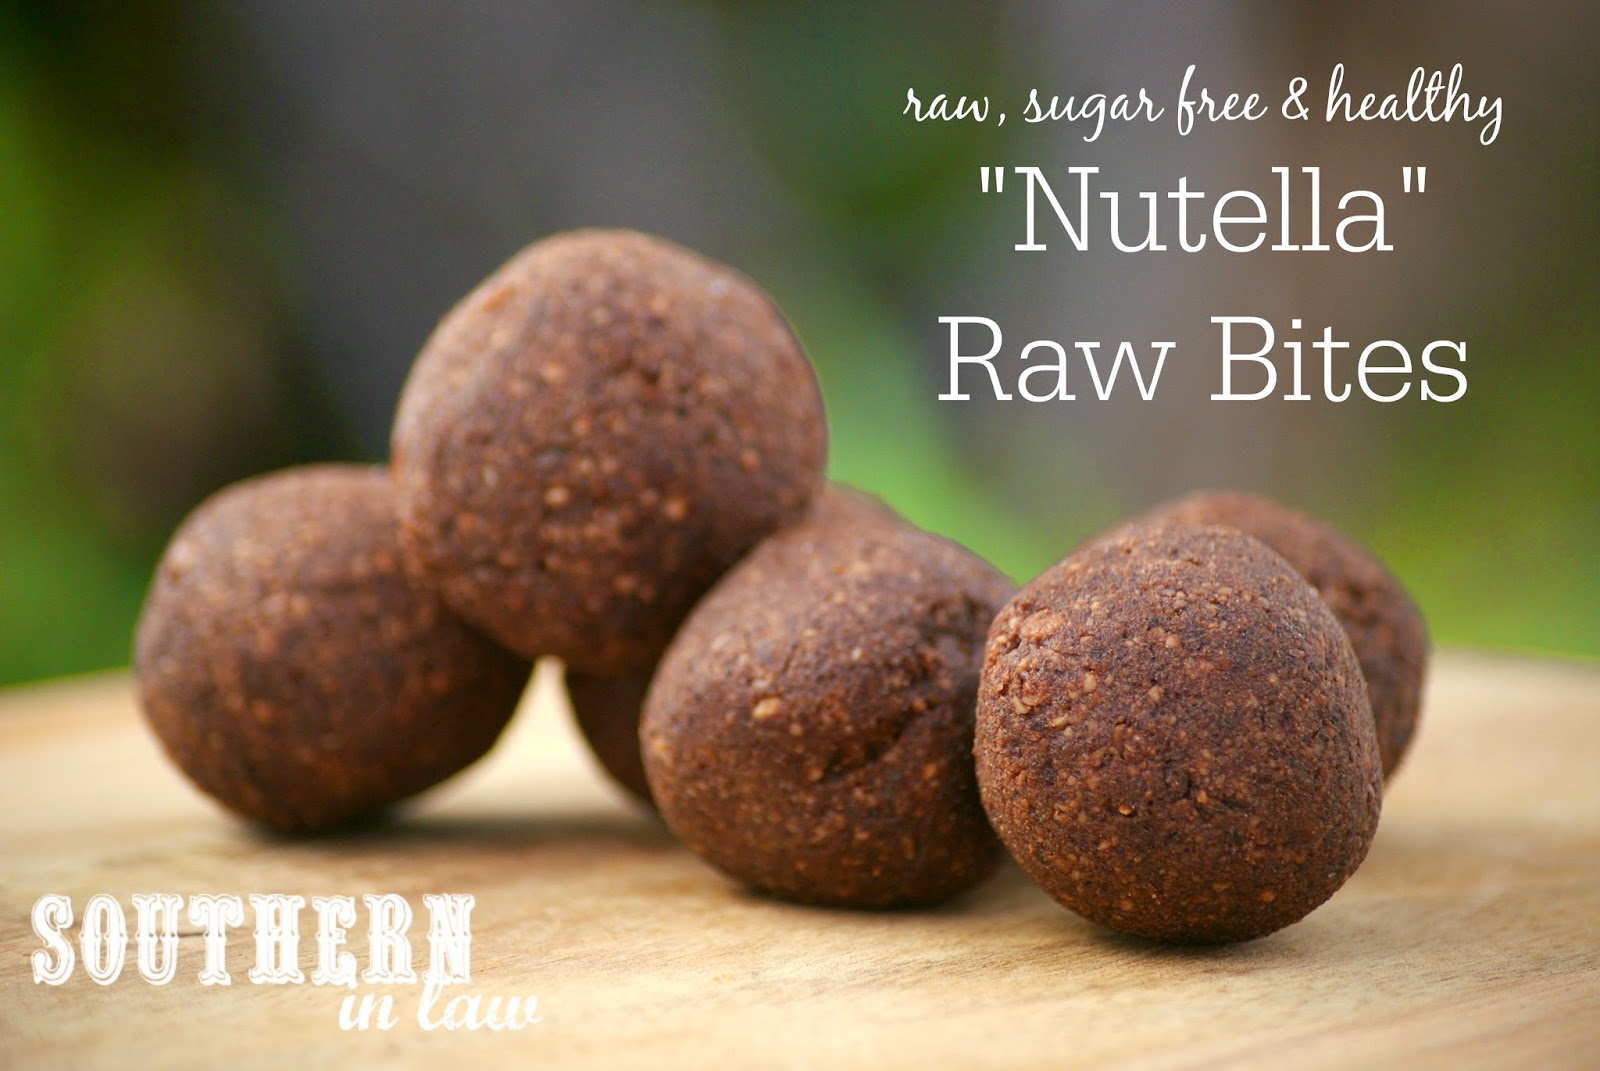 Nutella Raw Balls Recipe - Gluten Free, Sugar Free, Freezer Friendly, Clean Eating Friendly, Raw, Vegan